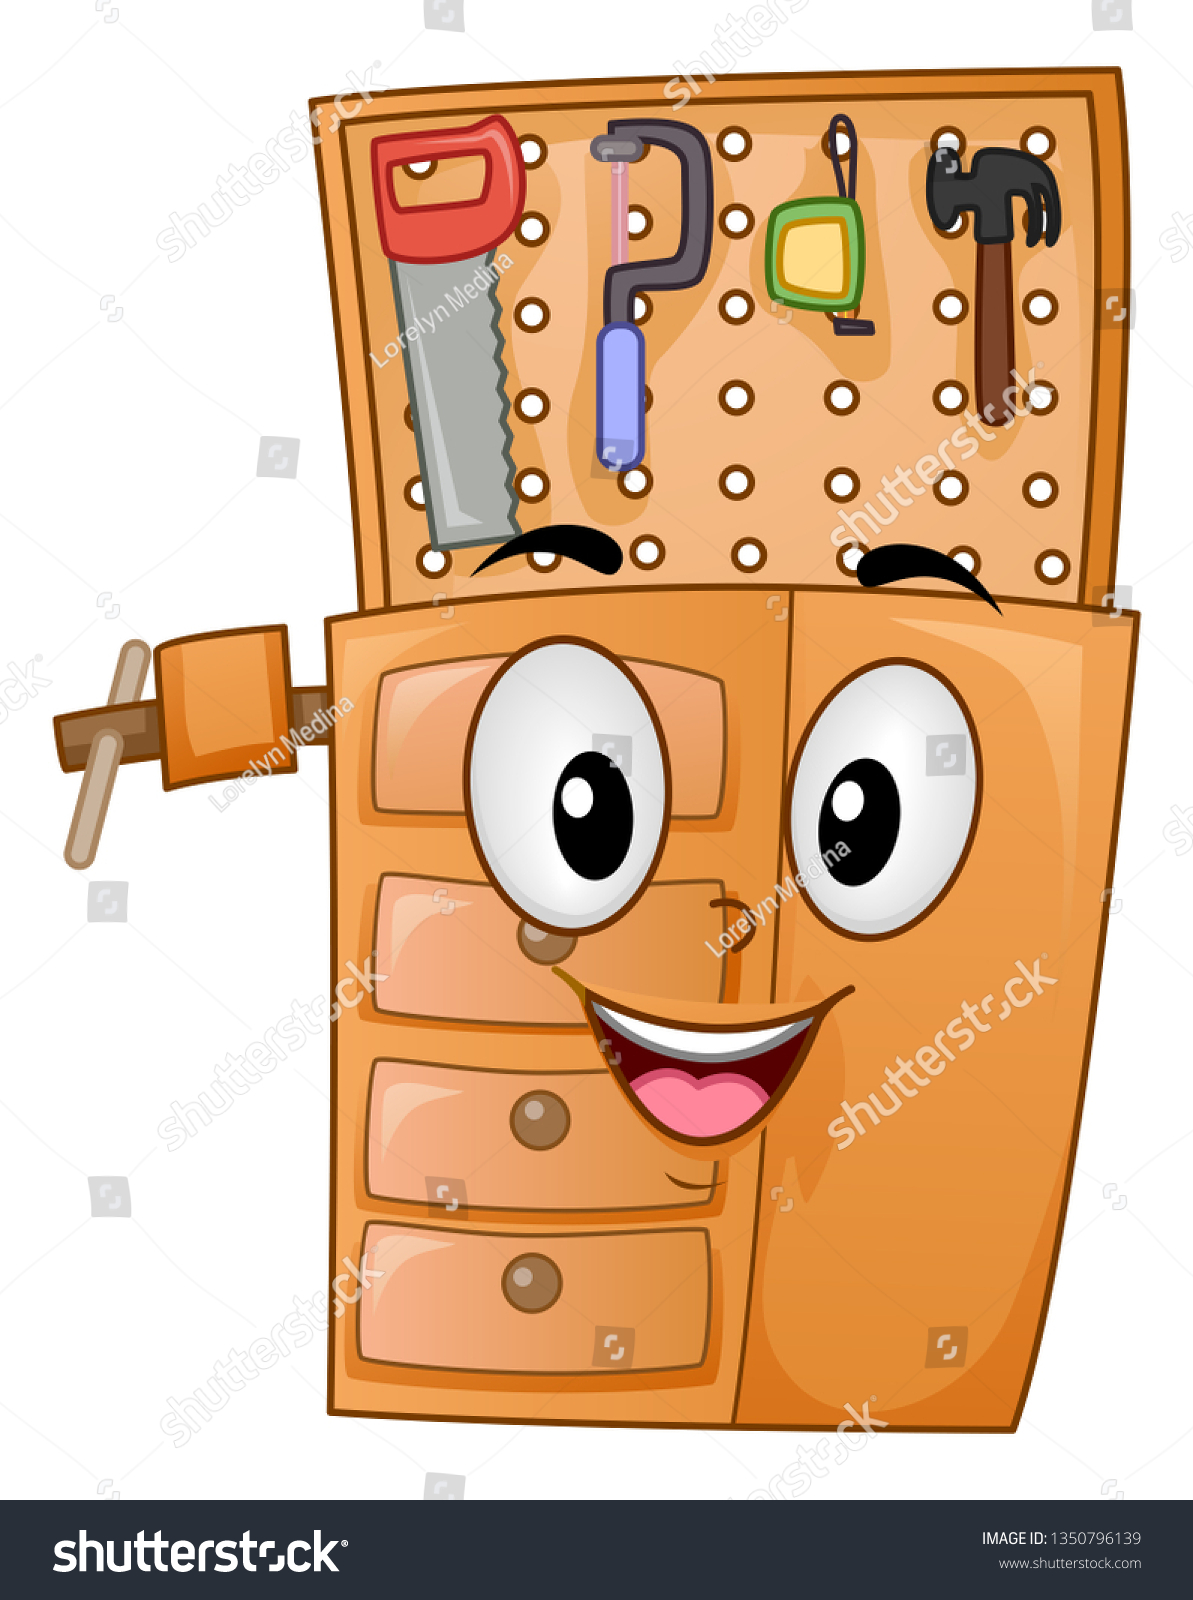 Illustration Woodworking Bench Mascot Showing Tools Stock Vector Royalty Free 1350796139